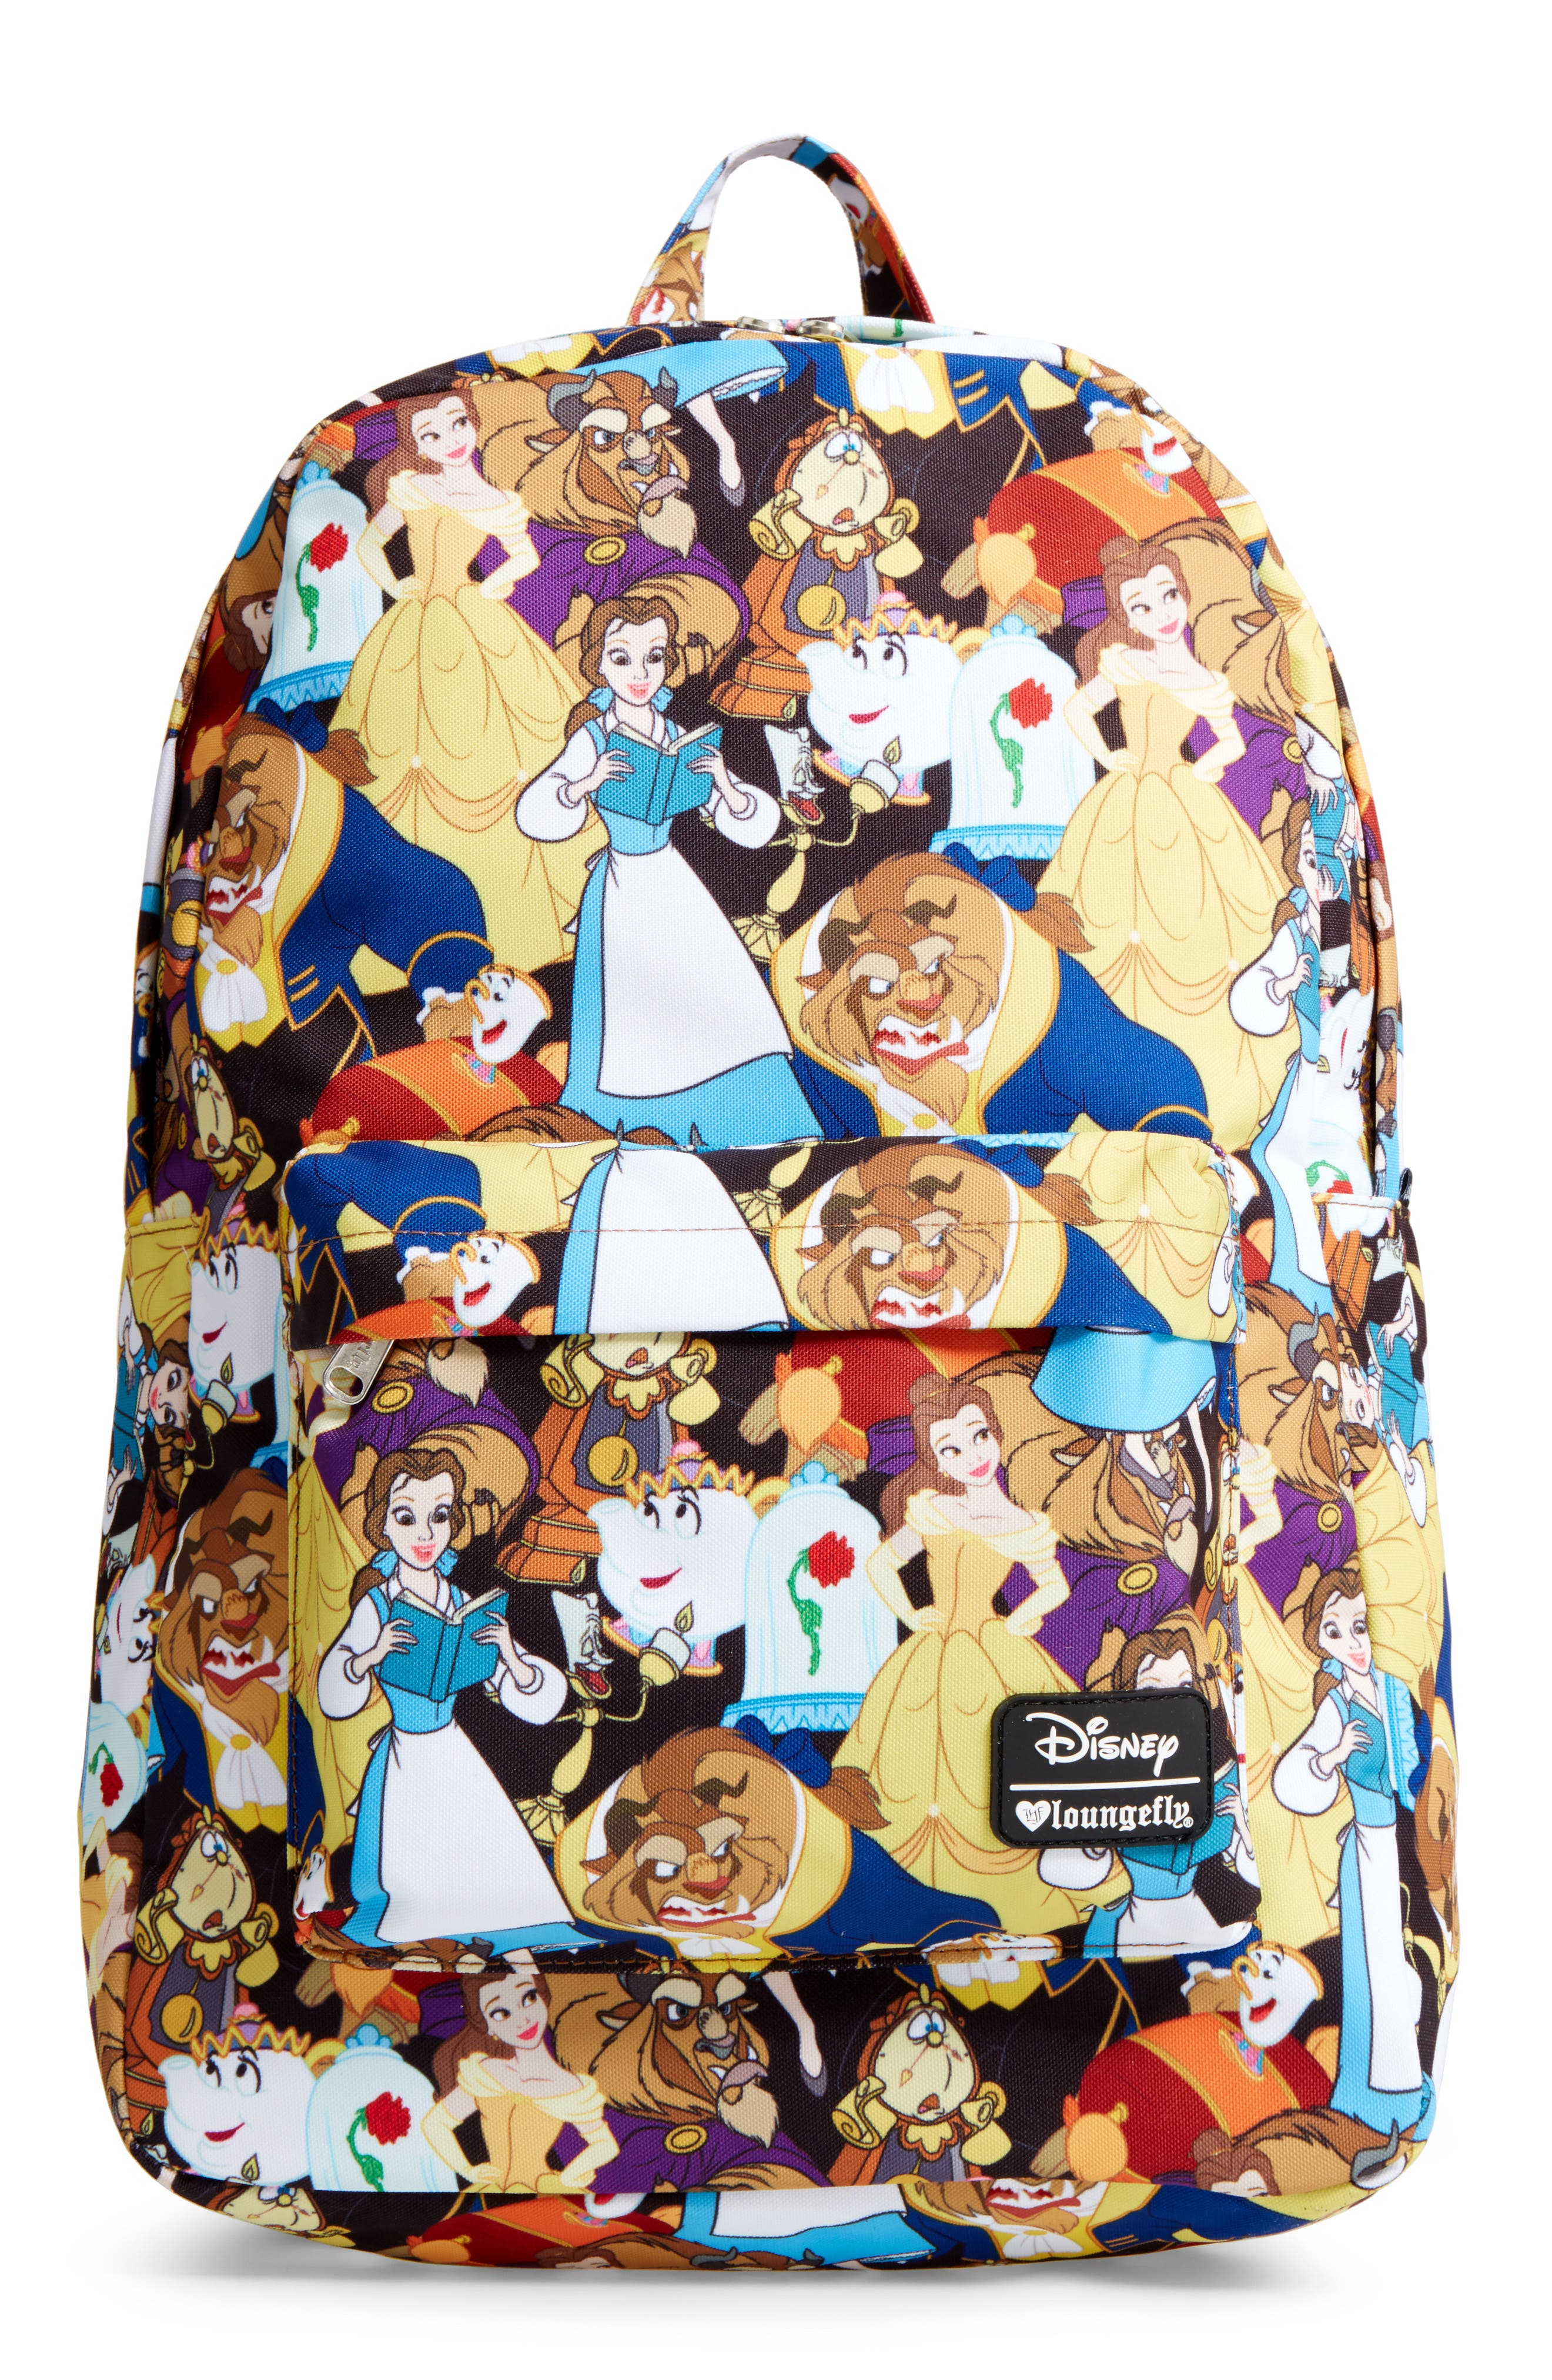 LOUNGEFLY Disney<sup>®</sup> Beauty & the Beast Backpack